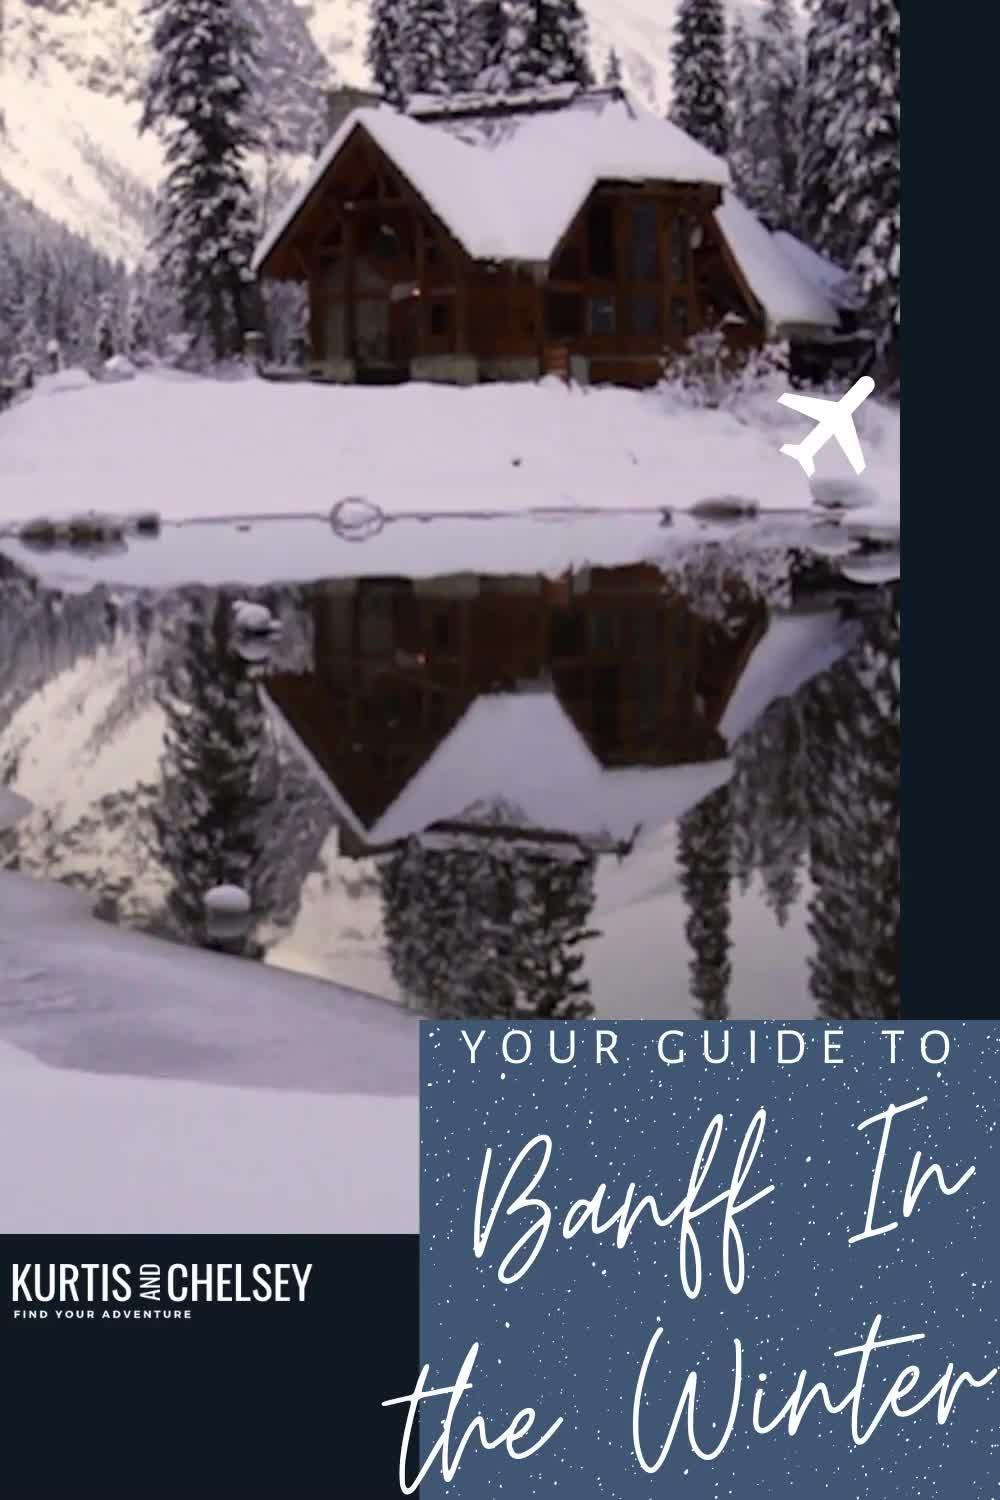 Complete guide to the best winter activities in Banff National Park.   #banff #alberta #travelalberta #nationalpark #canada